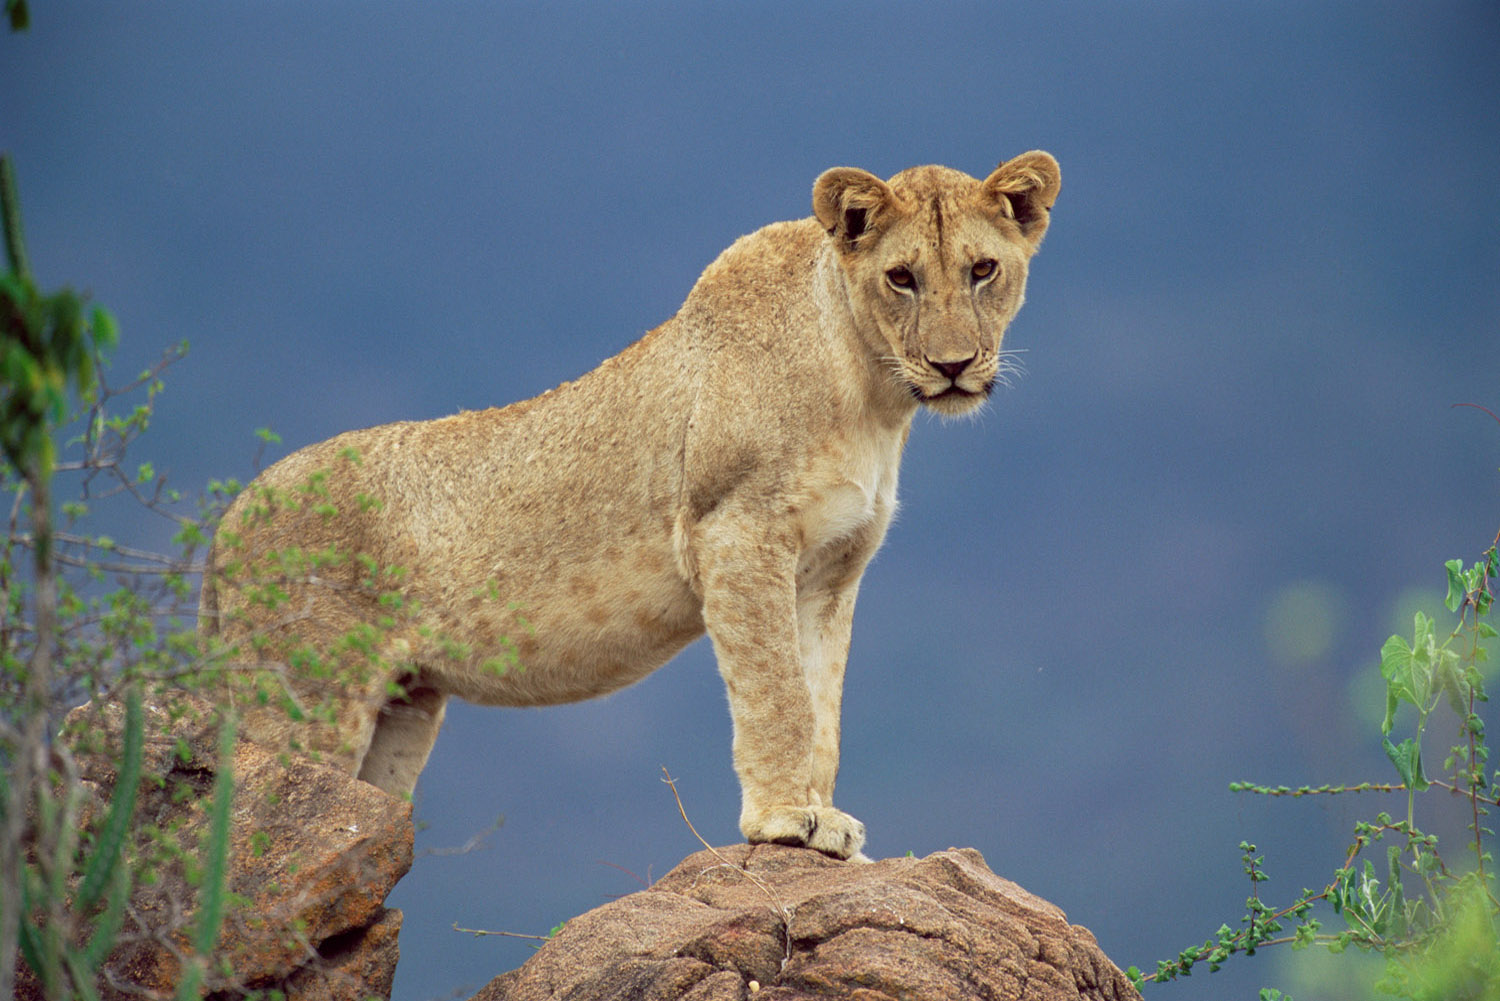 Lioness on rock, Tsavo West National Park, Kenya